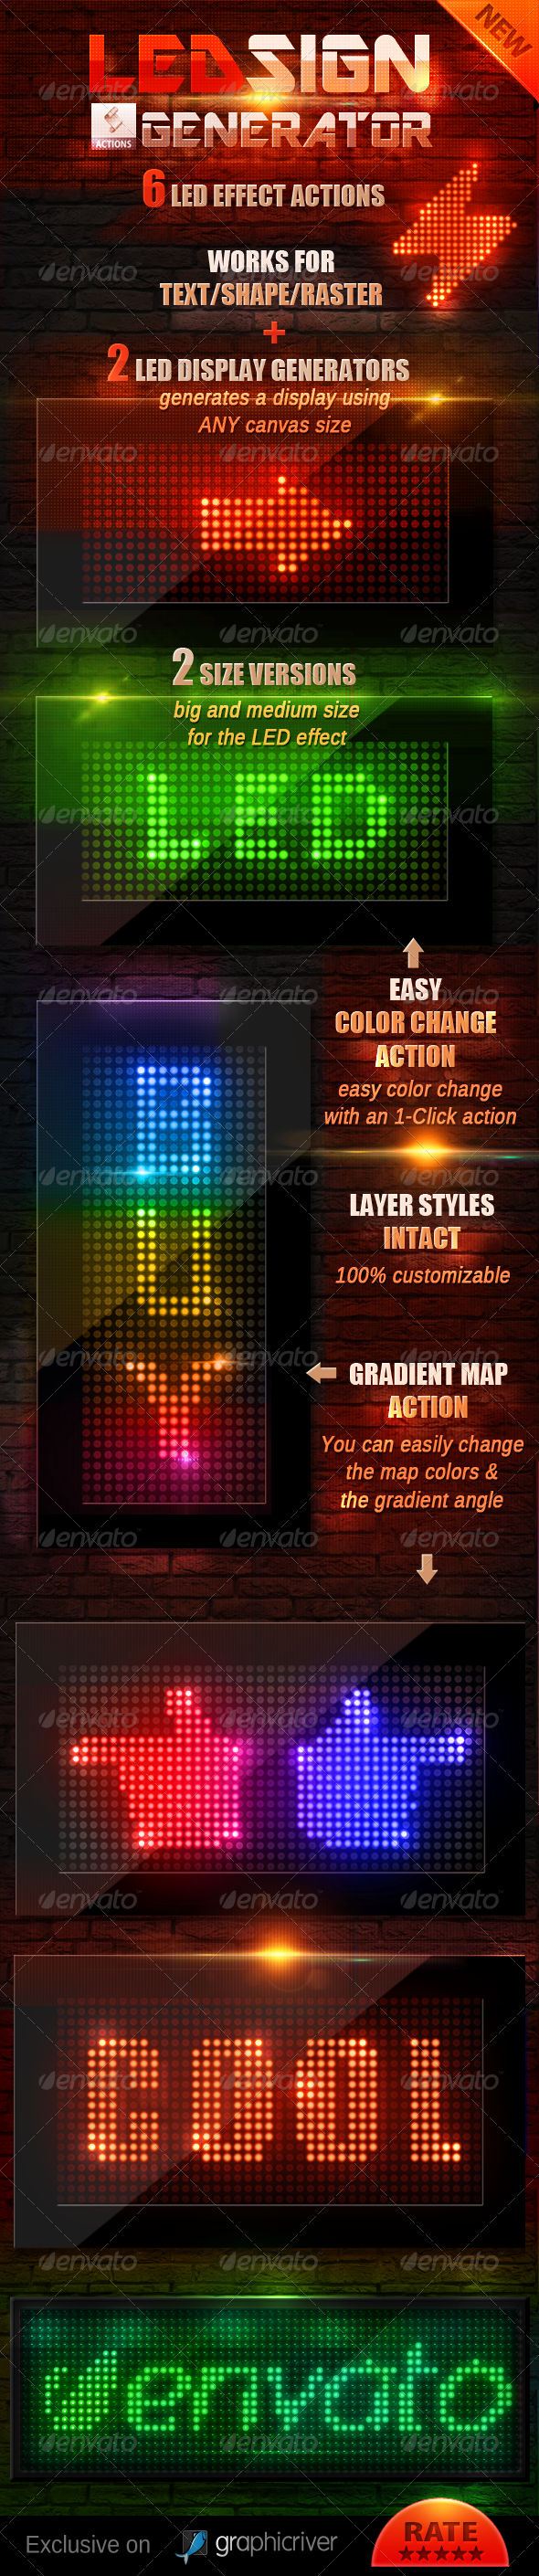 LED Lights Sign Generator Photoshop Action - Actions Photoshop